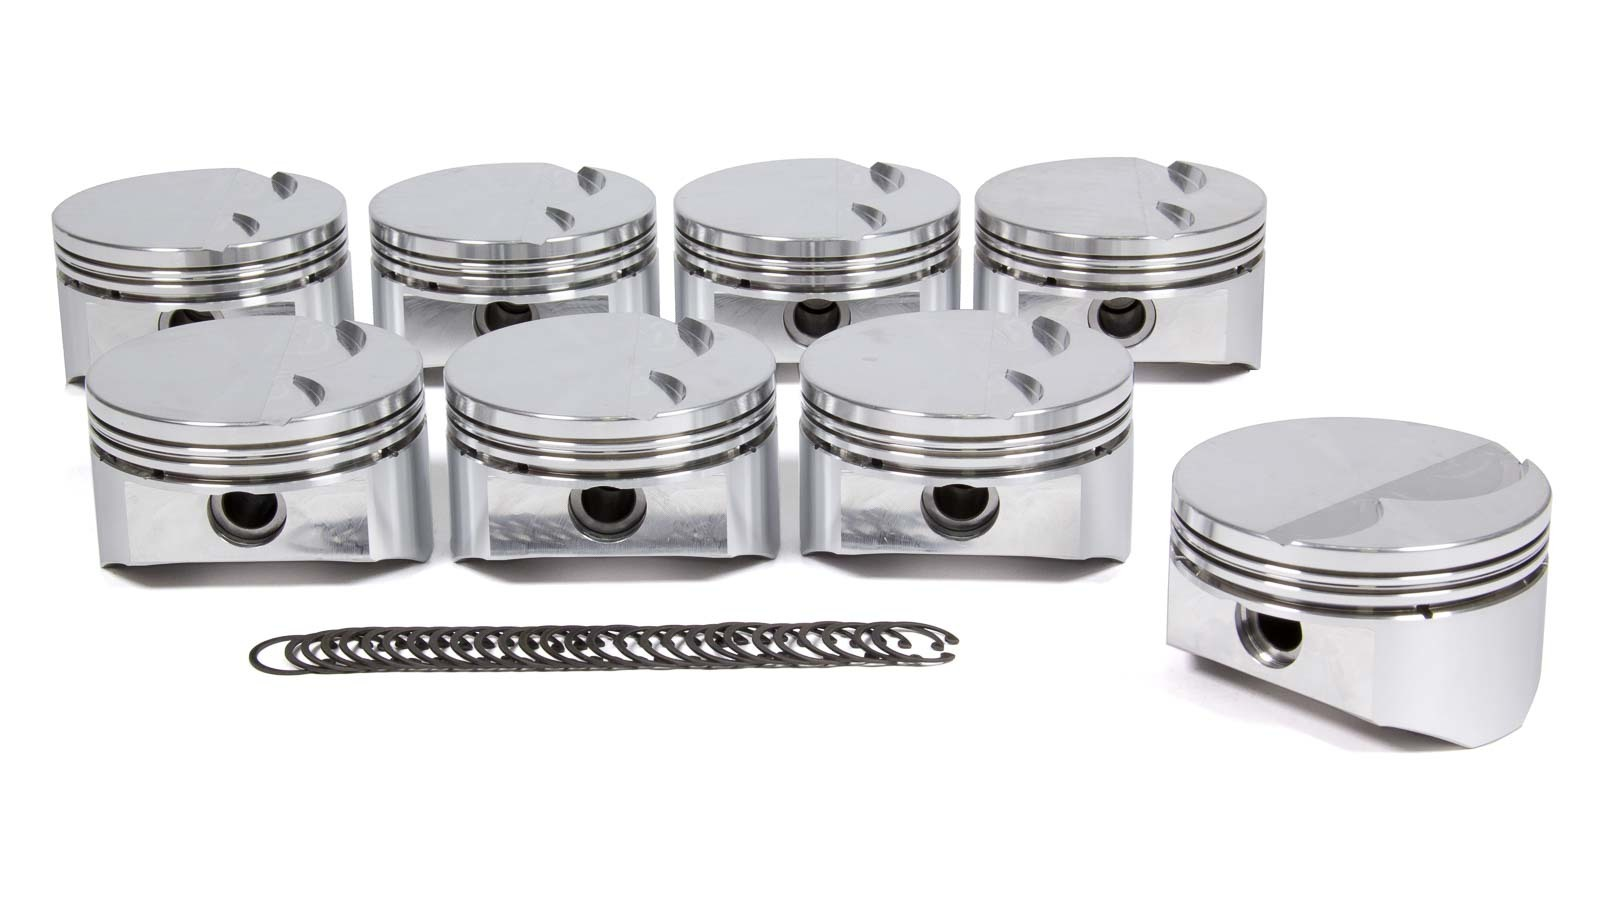 DSS Racing 1820BSX-4030 Piston, SX Series, Forged, 4.030 in Bore, 1.5 x 1.5 x 3.0 mm Ring Grooves, Minus 5.0 cc, GM LS-Series, Set of 8